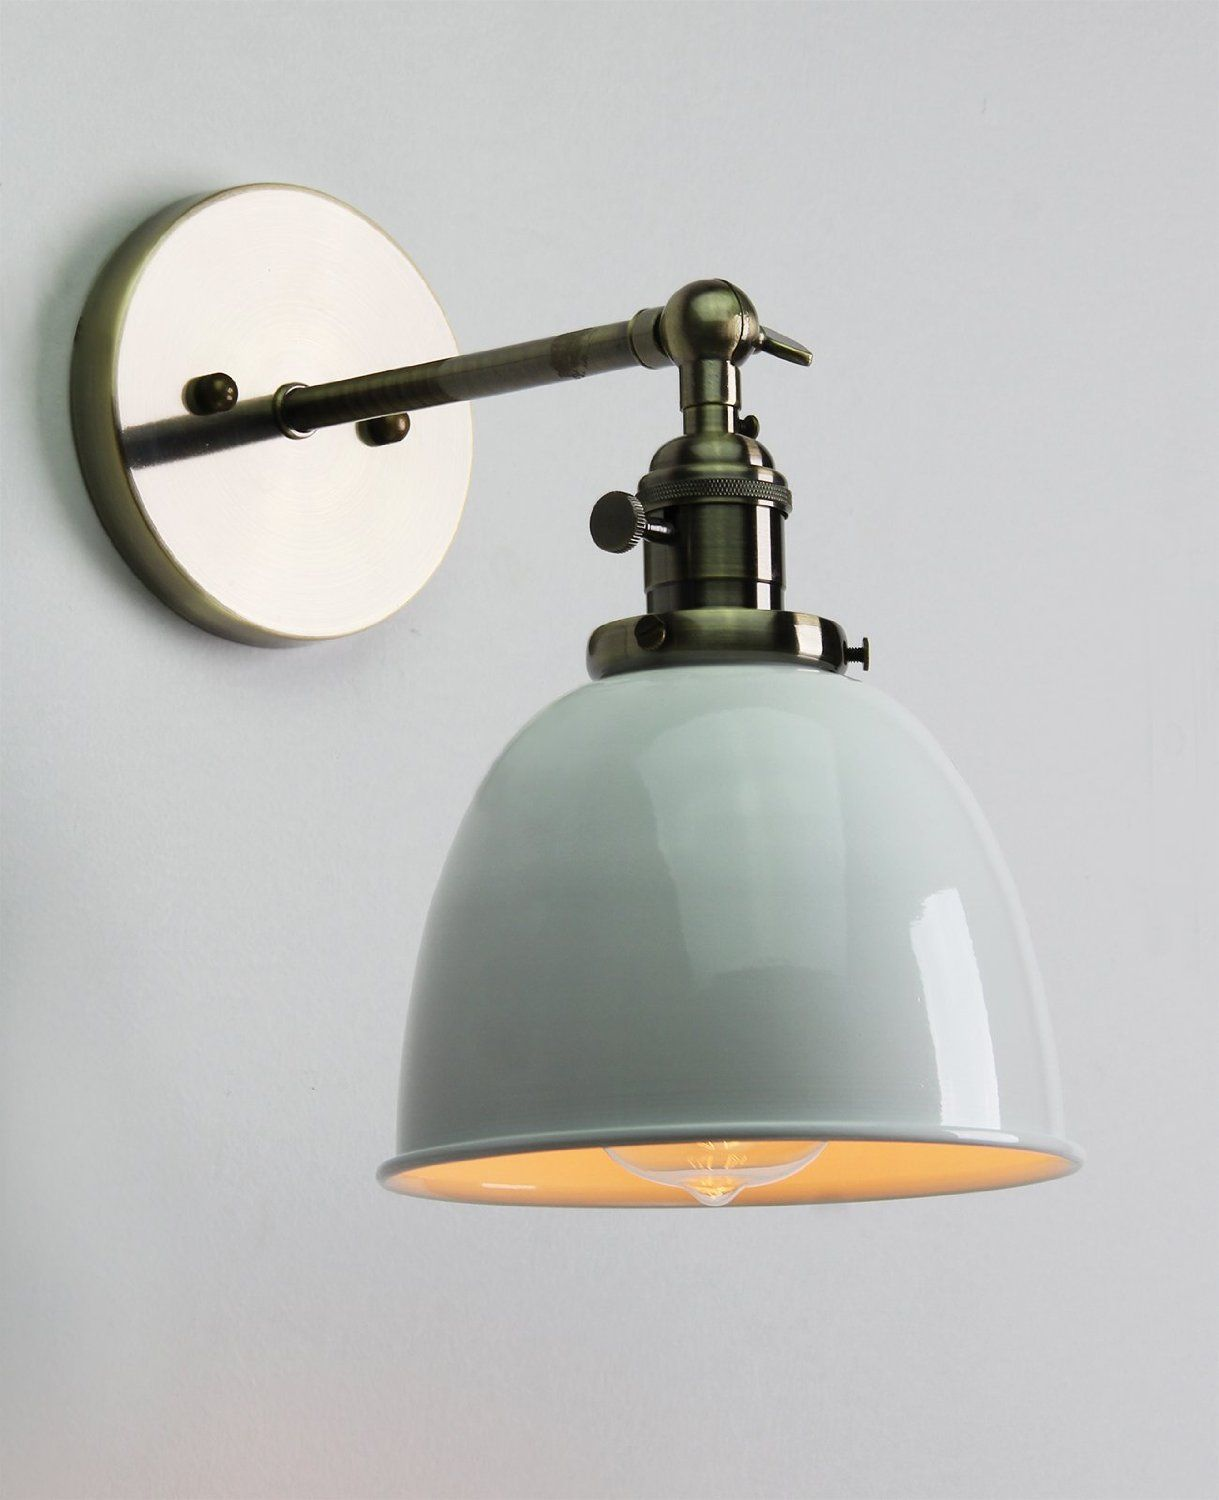 permo 6.3-inch metal dome shade industrial wall sconce lighting